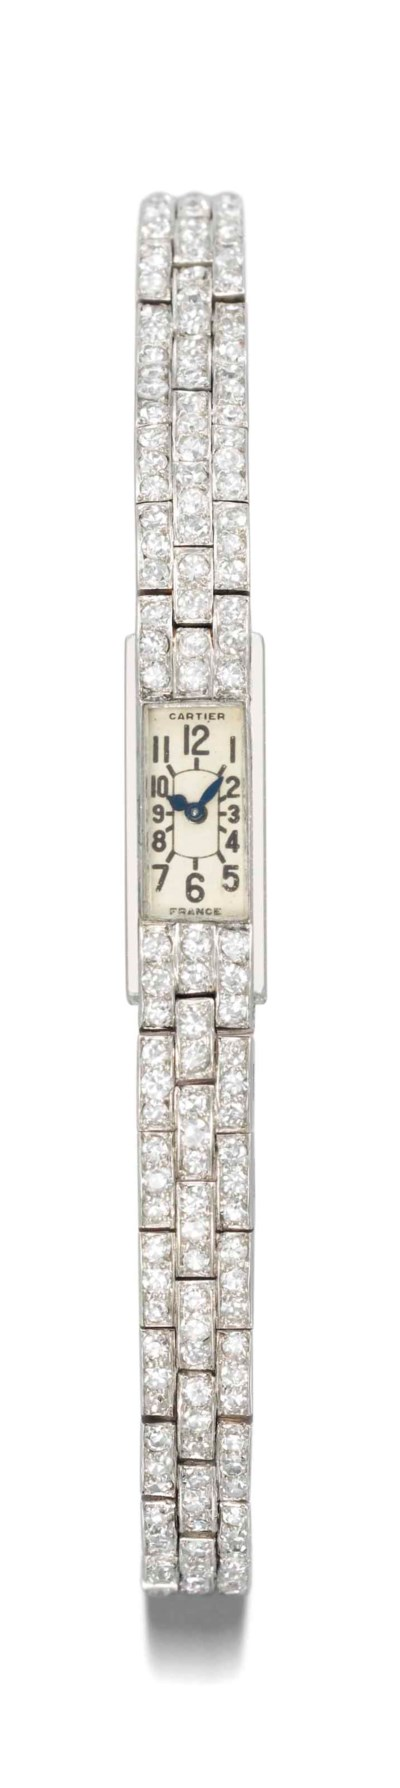 Cartier. A lady's very fine, r